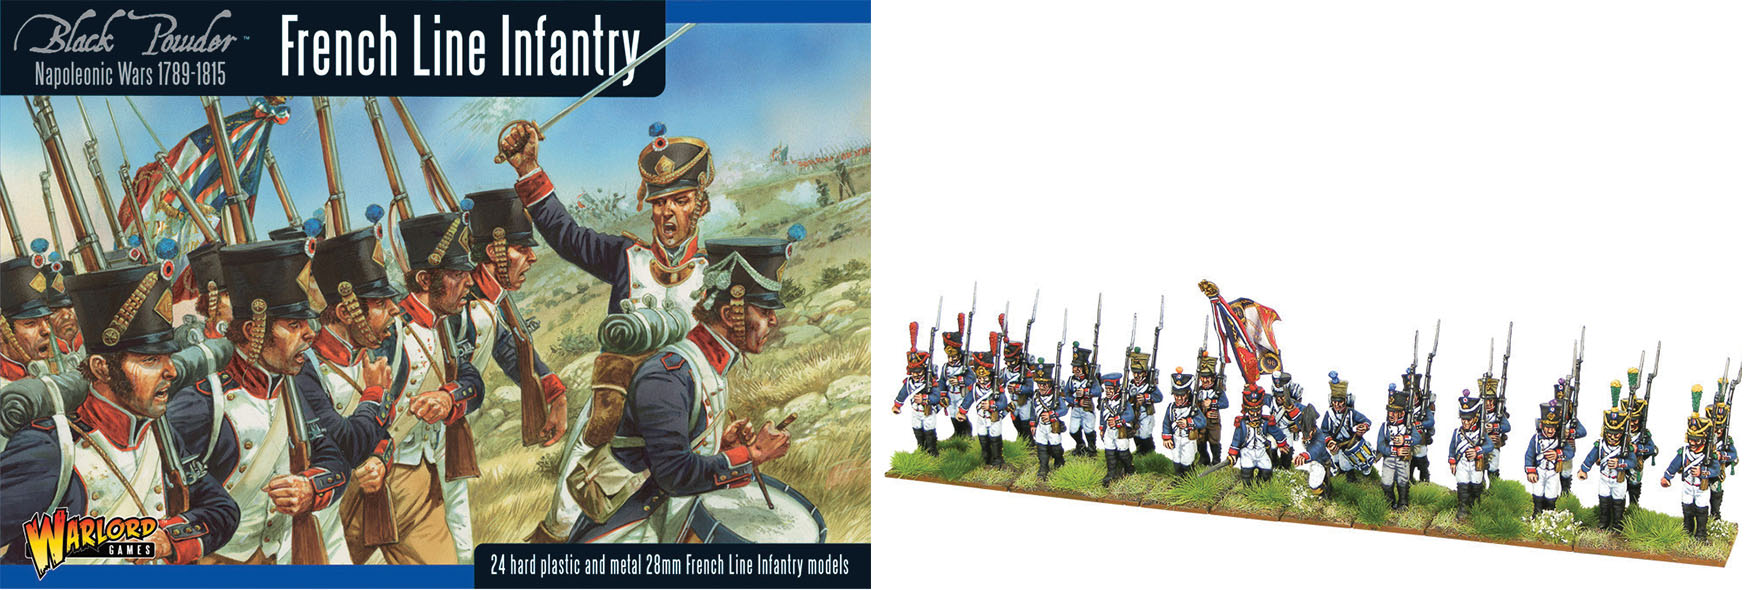 Black Powder: French Line Infantry(24) - Revised Box Box Front